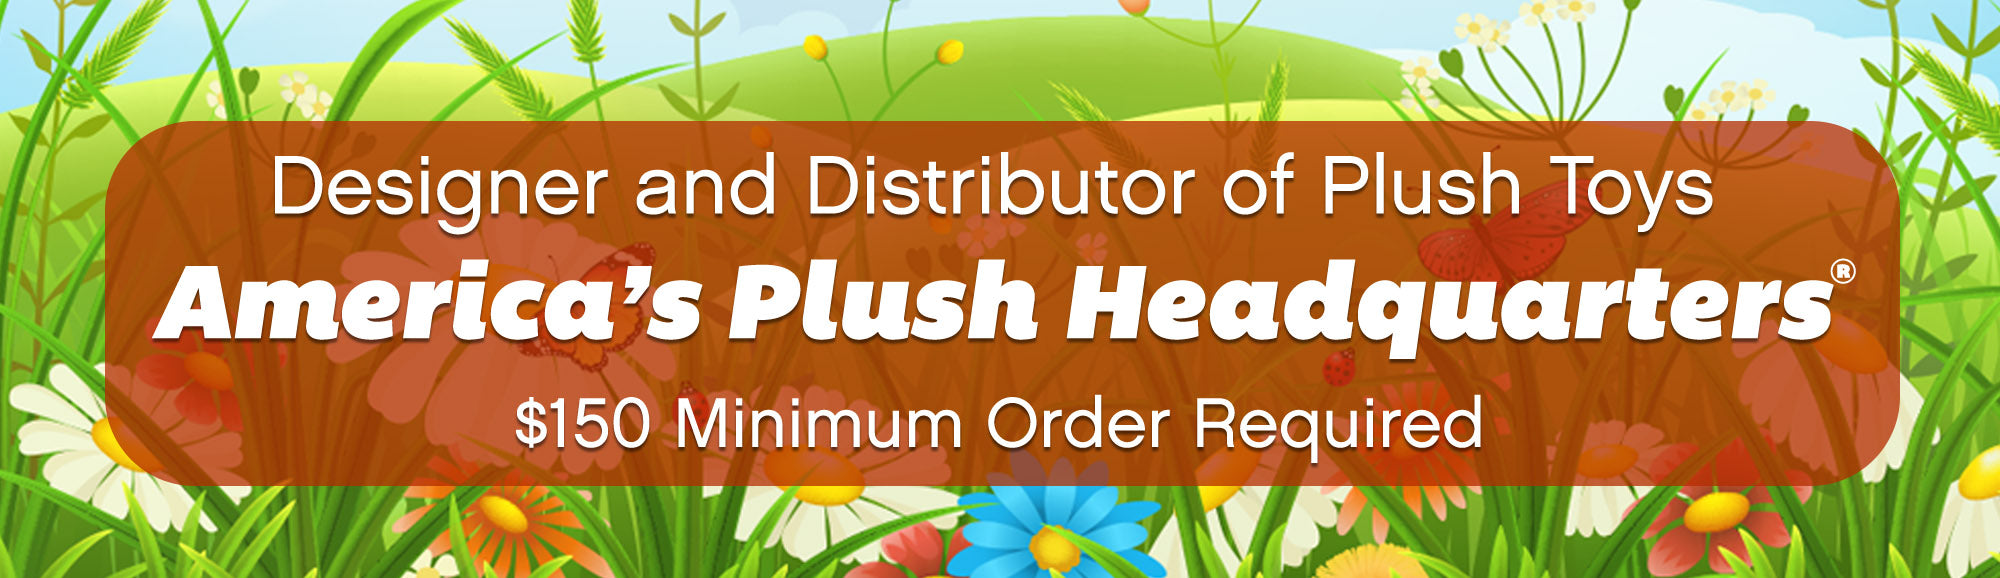 Banner that explains that Plush in a Rush is a designer and distributor of plush toys